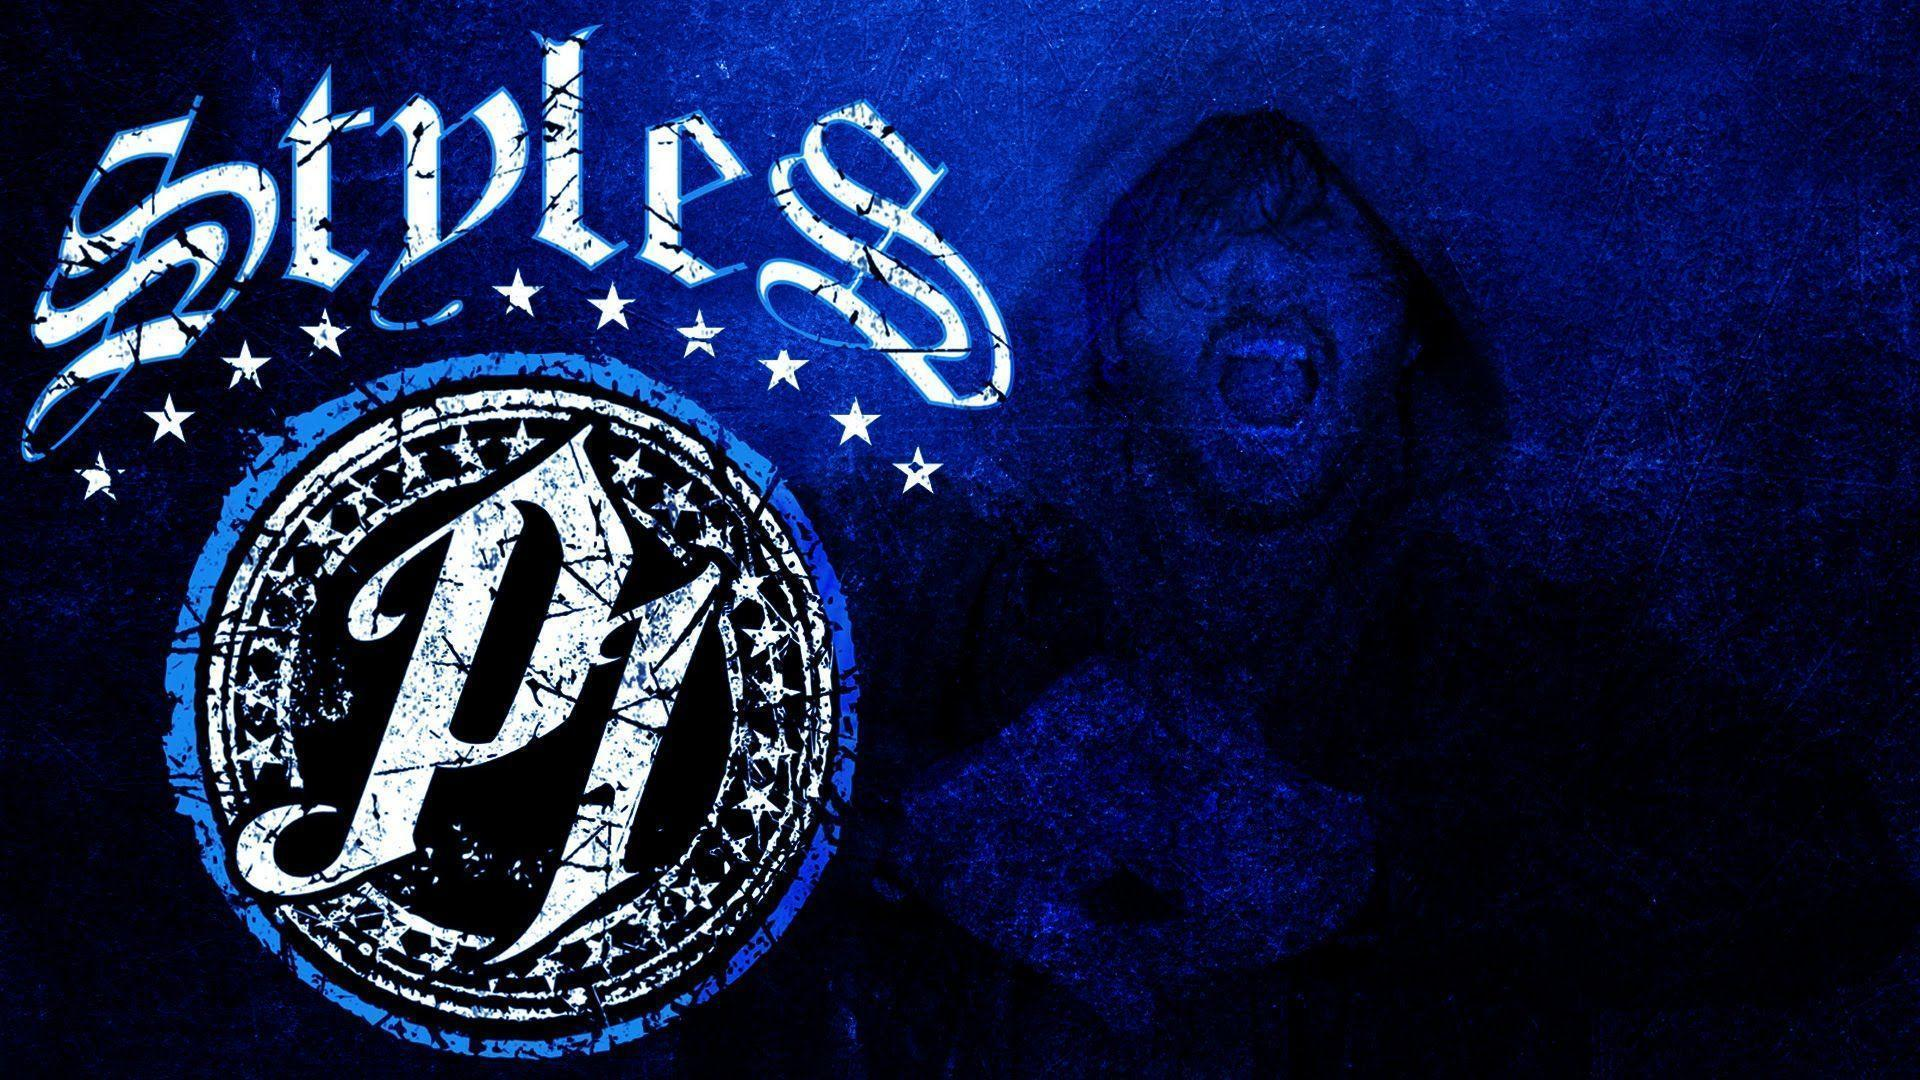 Wwe A J Styles Wallpapers Wallpaper Cave